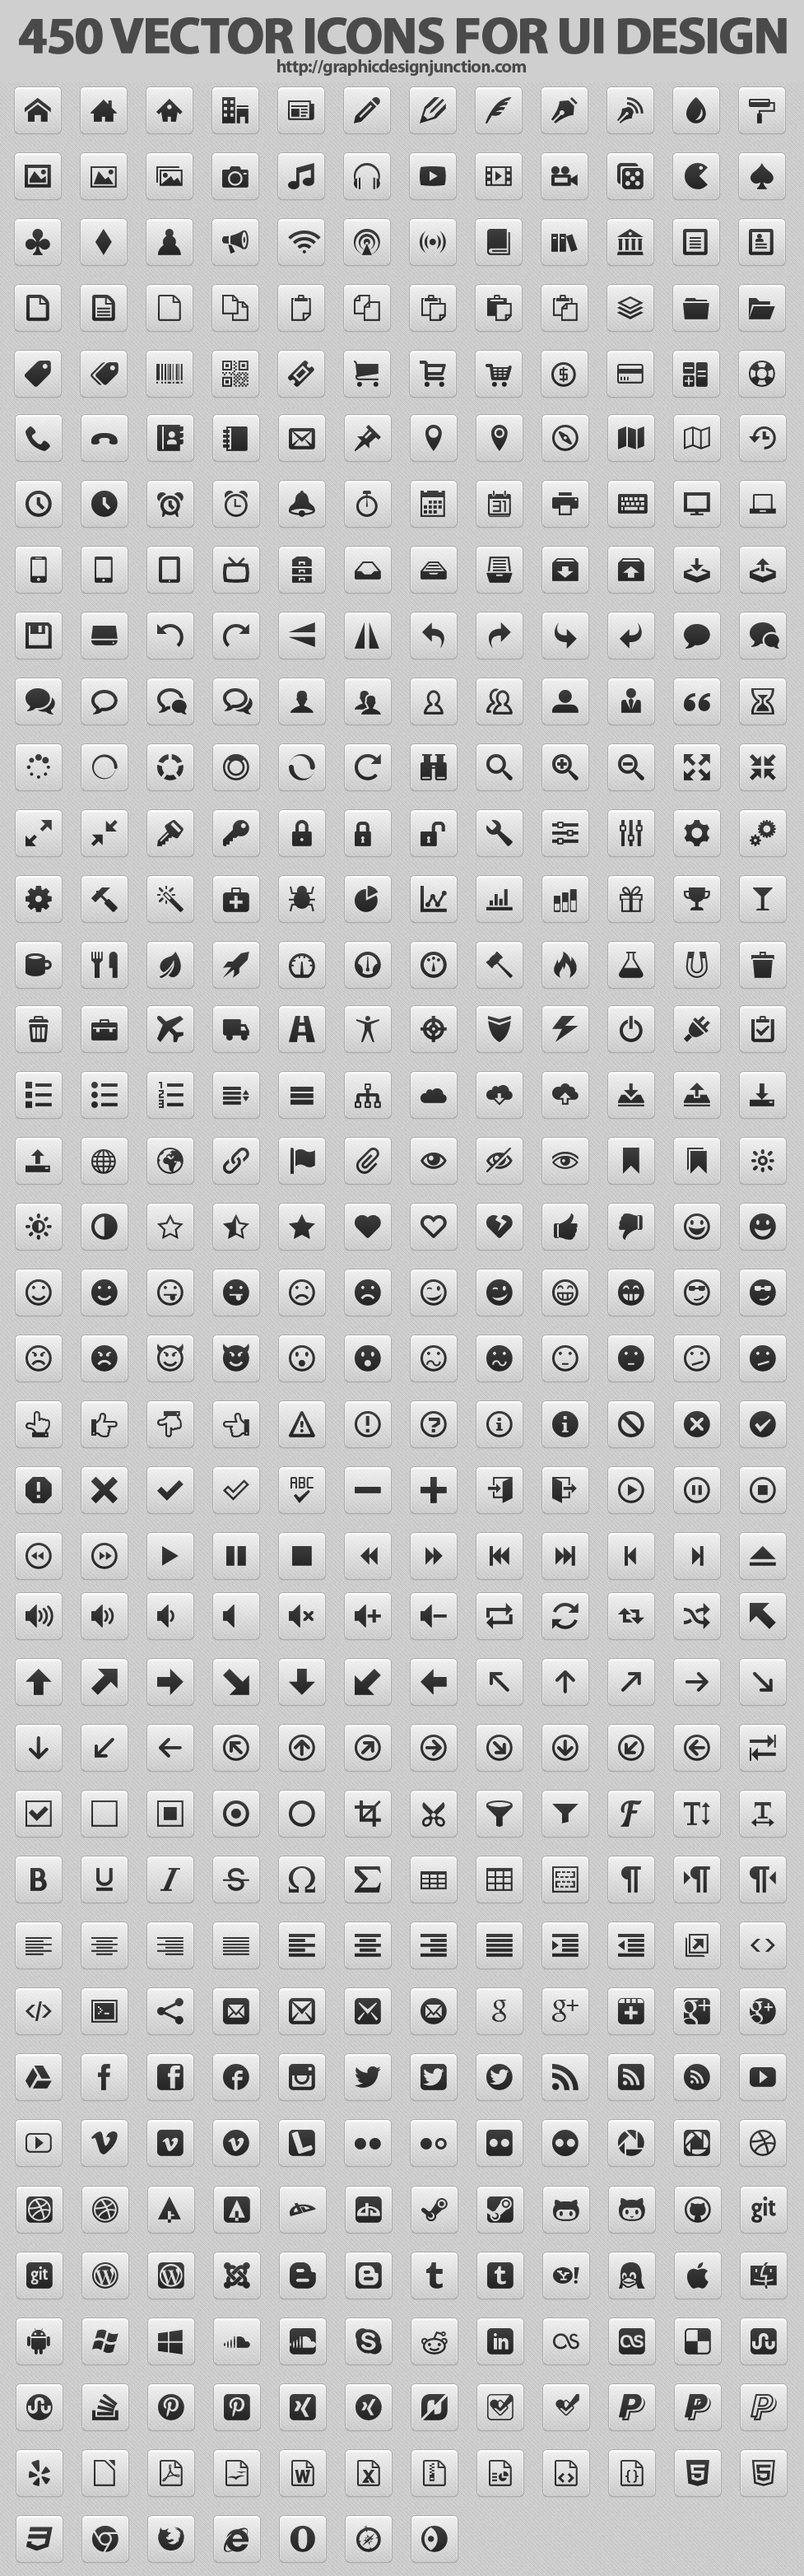 450 Beautiful Vector Icons For Website UI Design | Icons ...